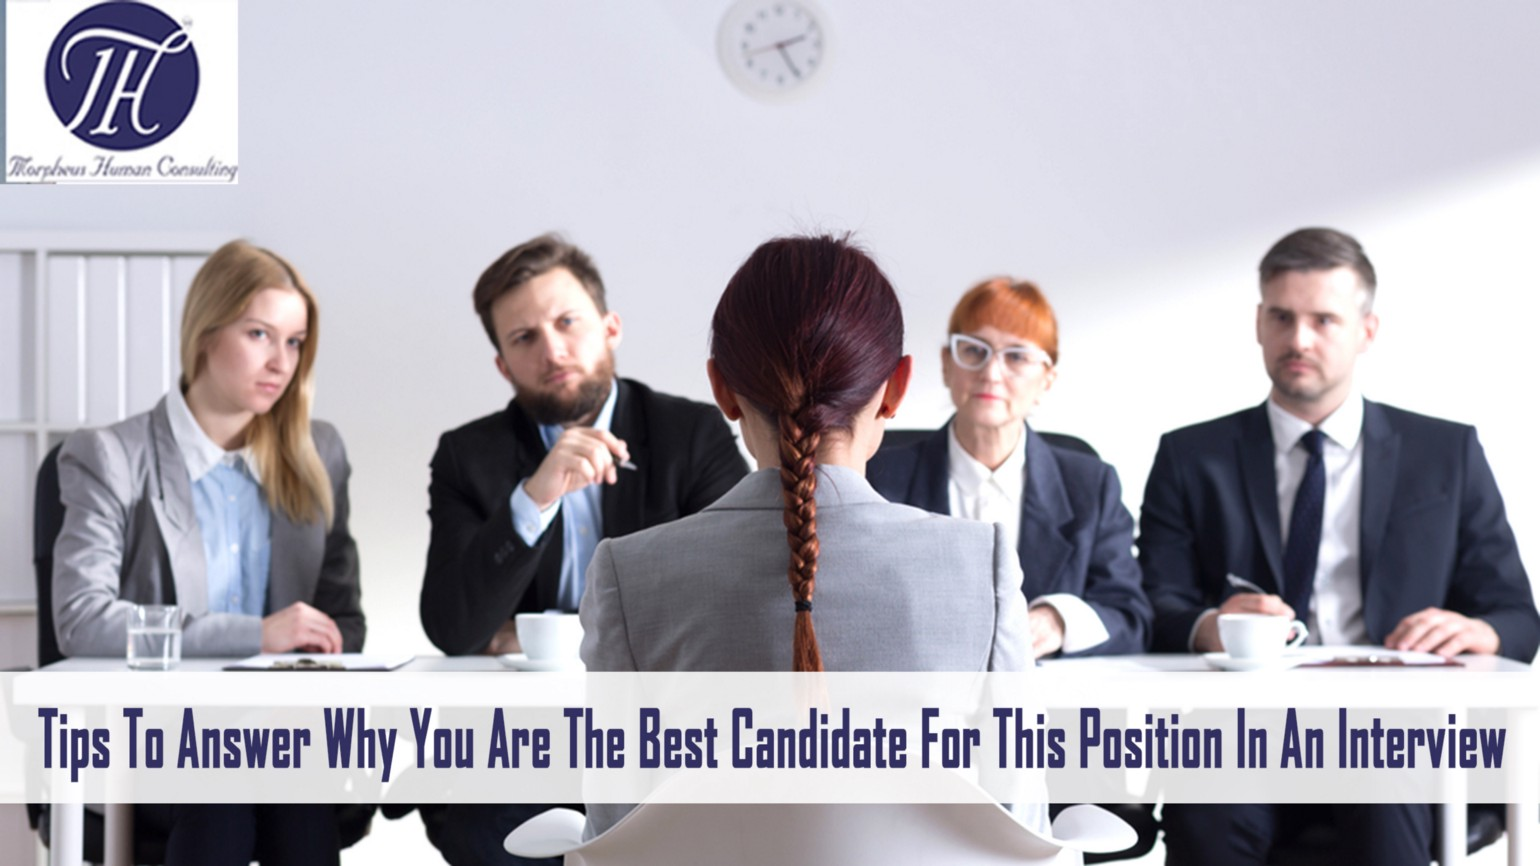 tips to answer why are you the best candidate for this position in an interview